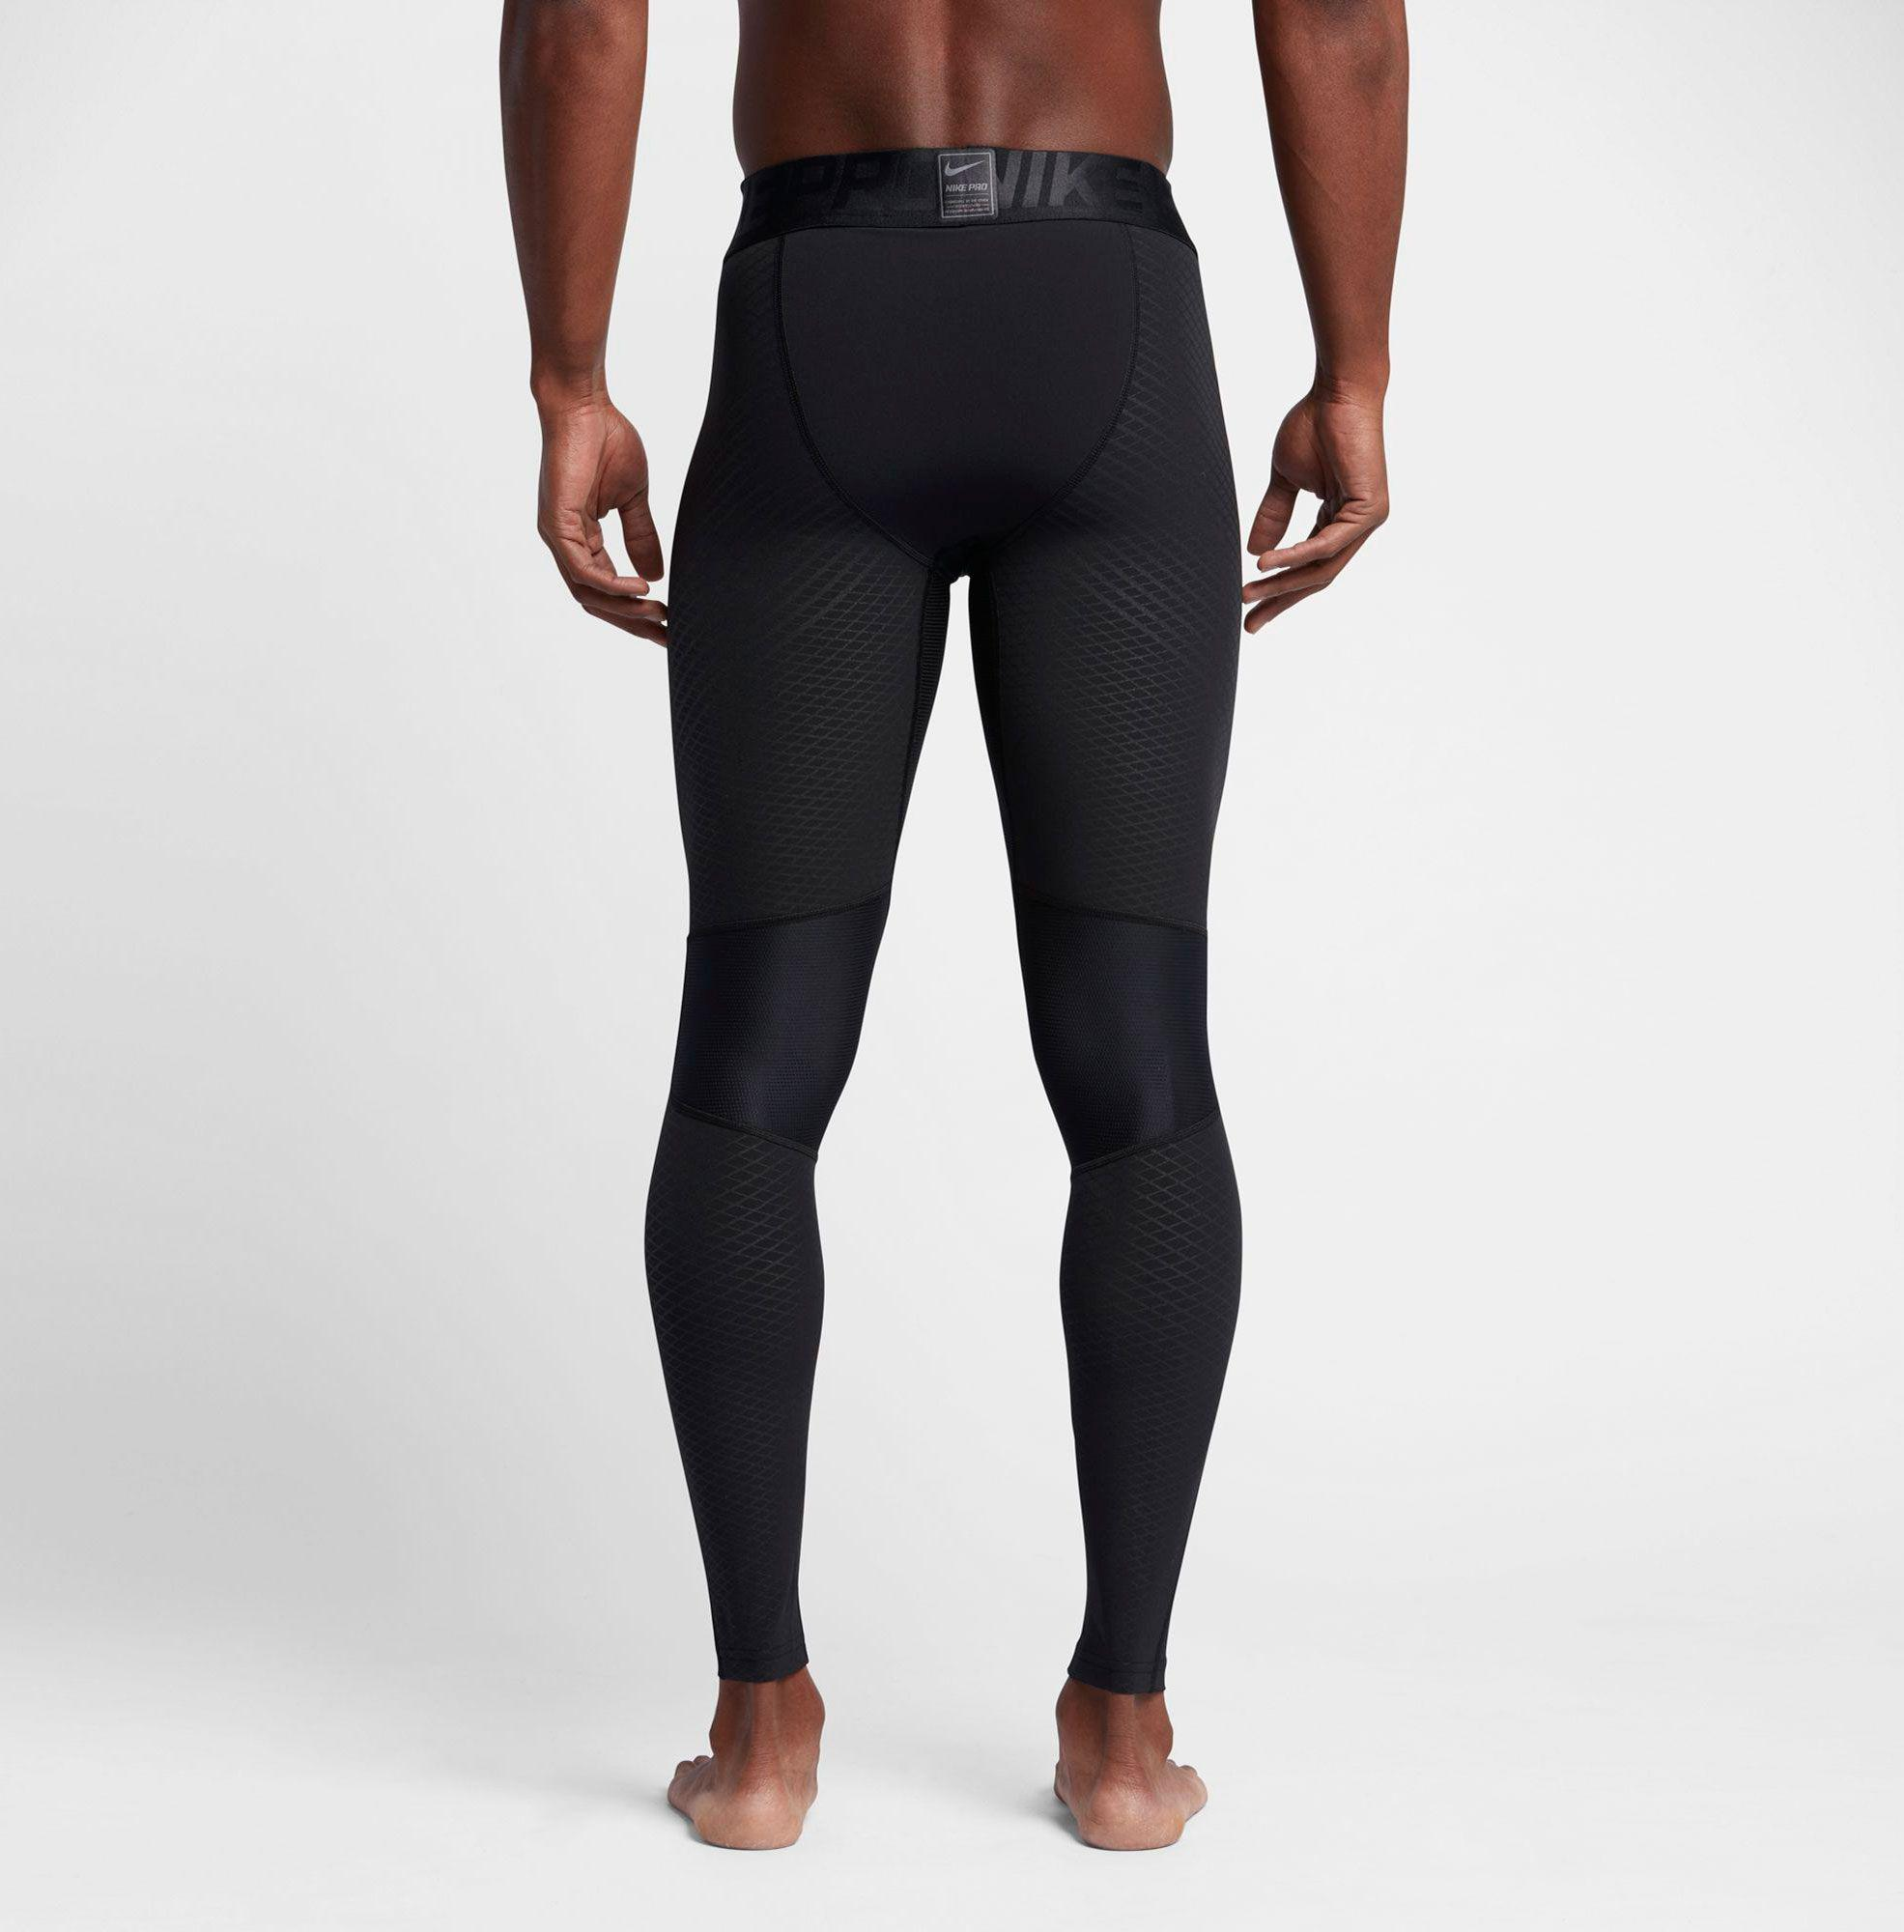 f0ec274c22 Nike Pro Zonal Strength Hyper Compression Tights in Black for Men - Lyst